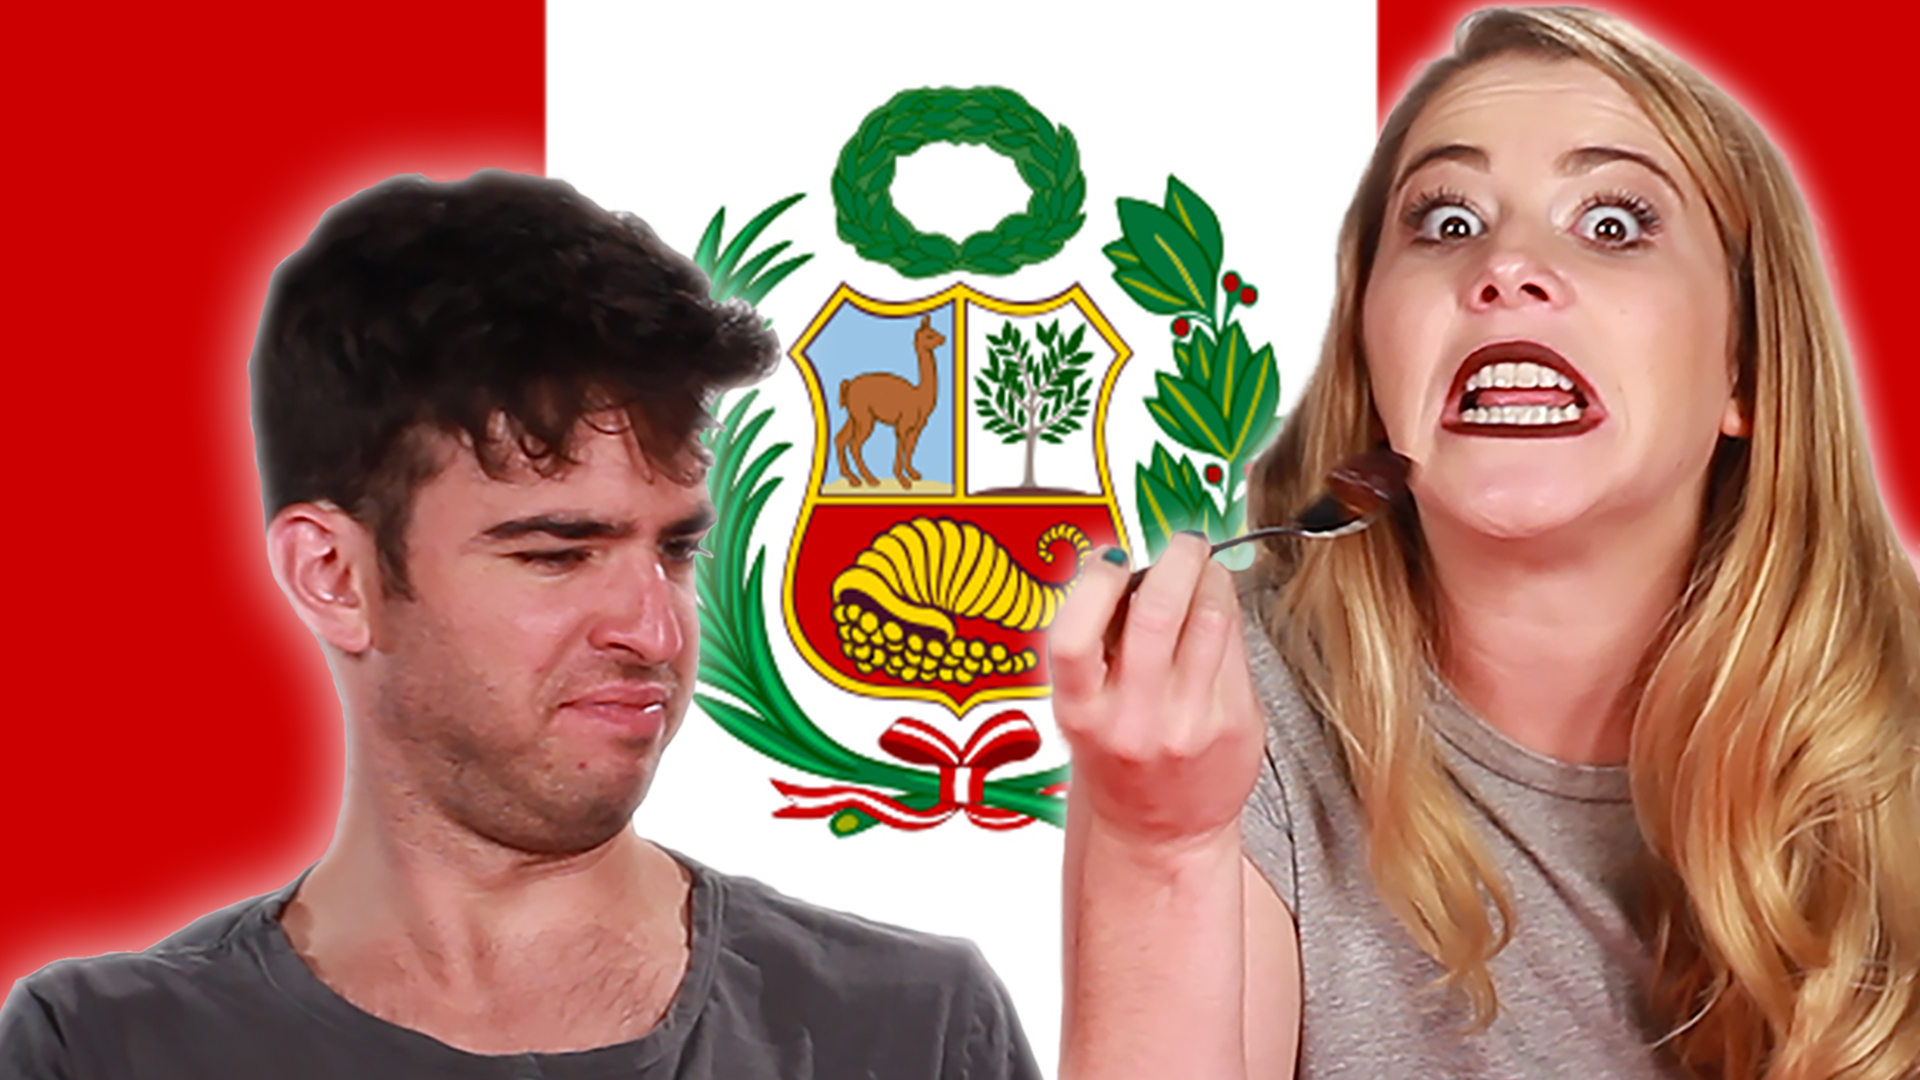 Americans Try Peruvian Food